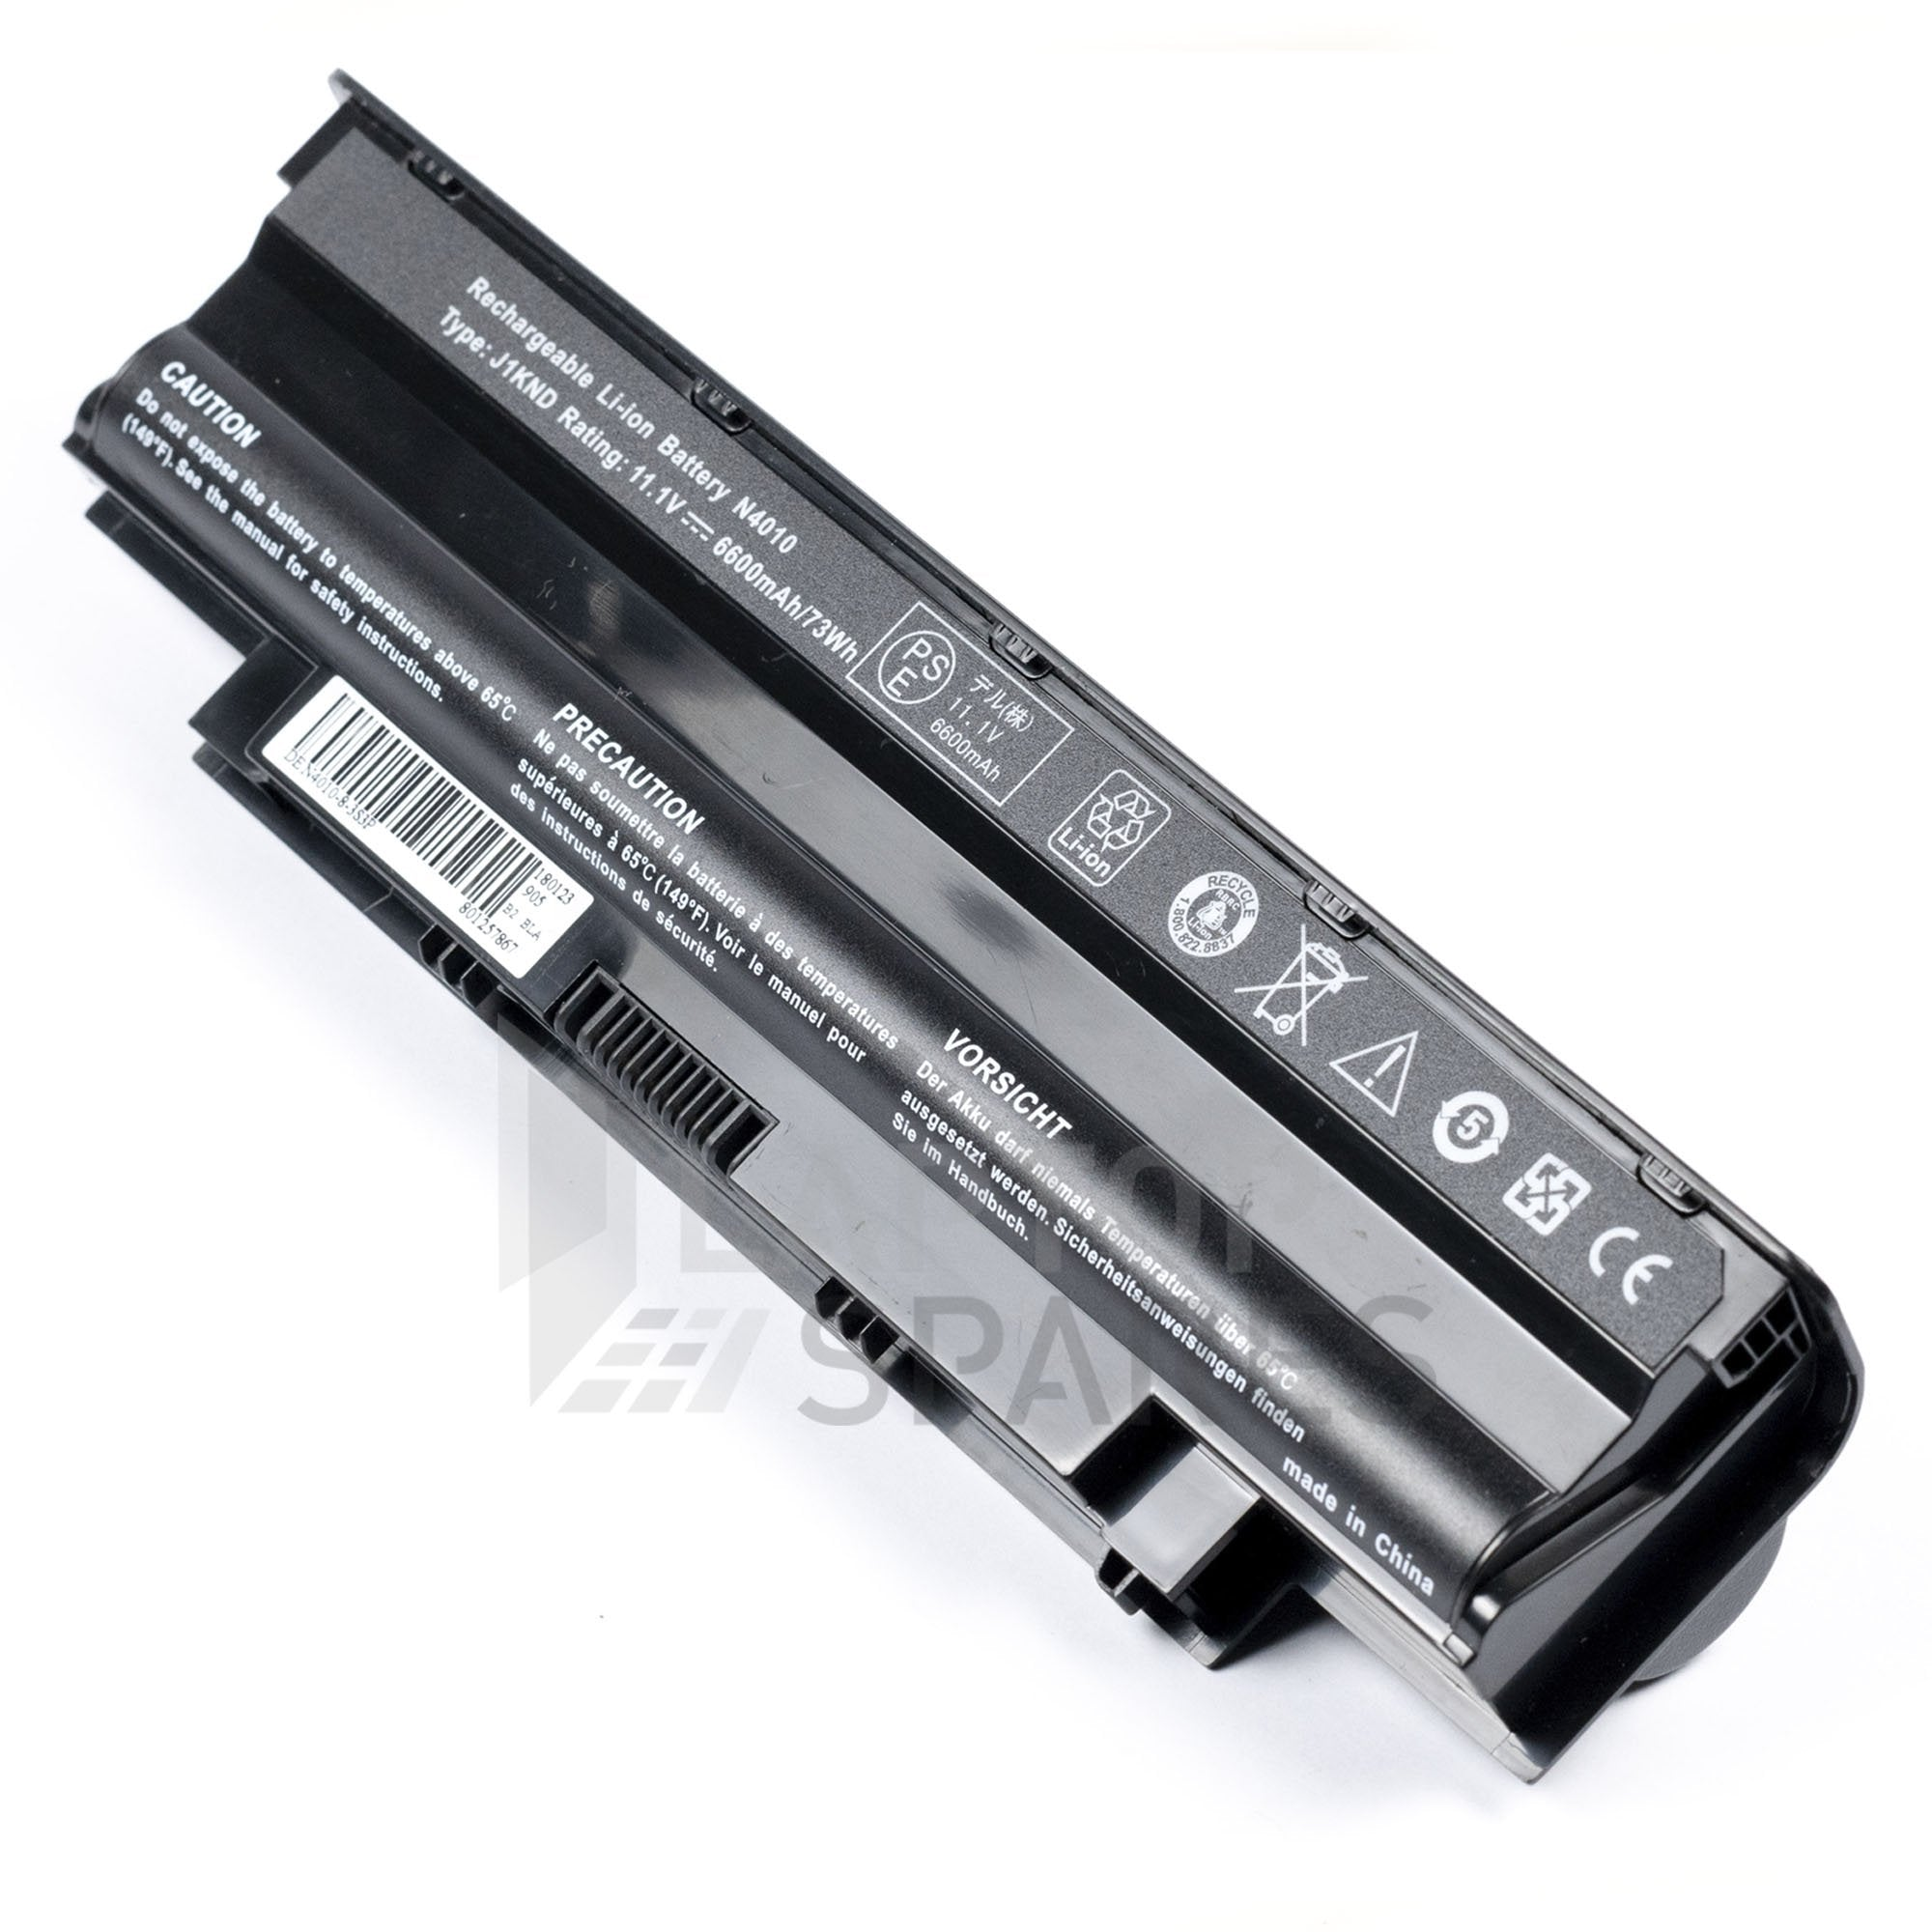 Dell Inspiron 13R 6600mAh 9 Cell Battery